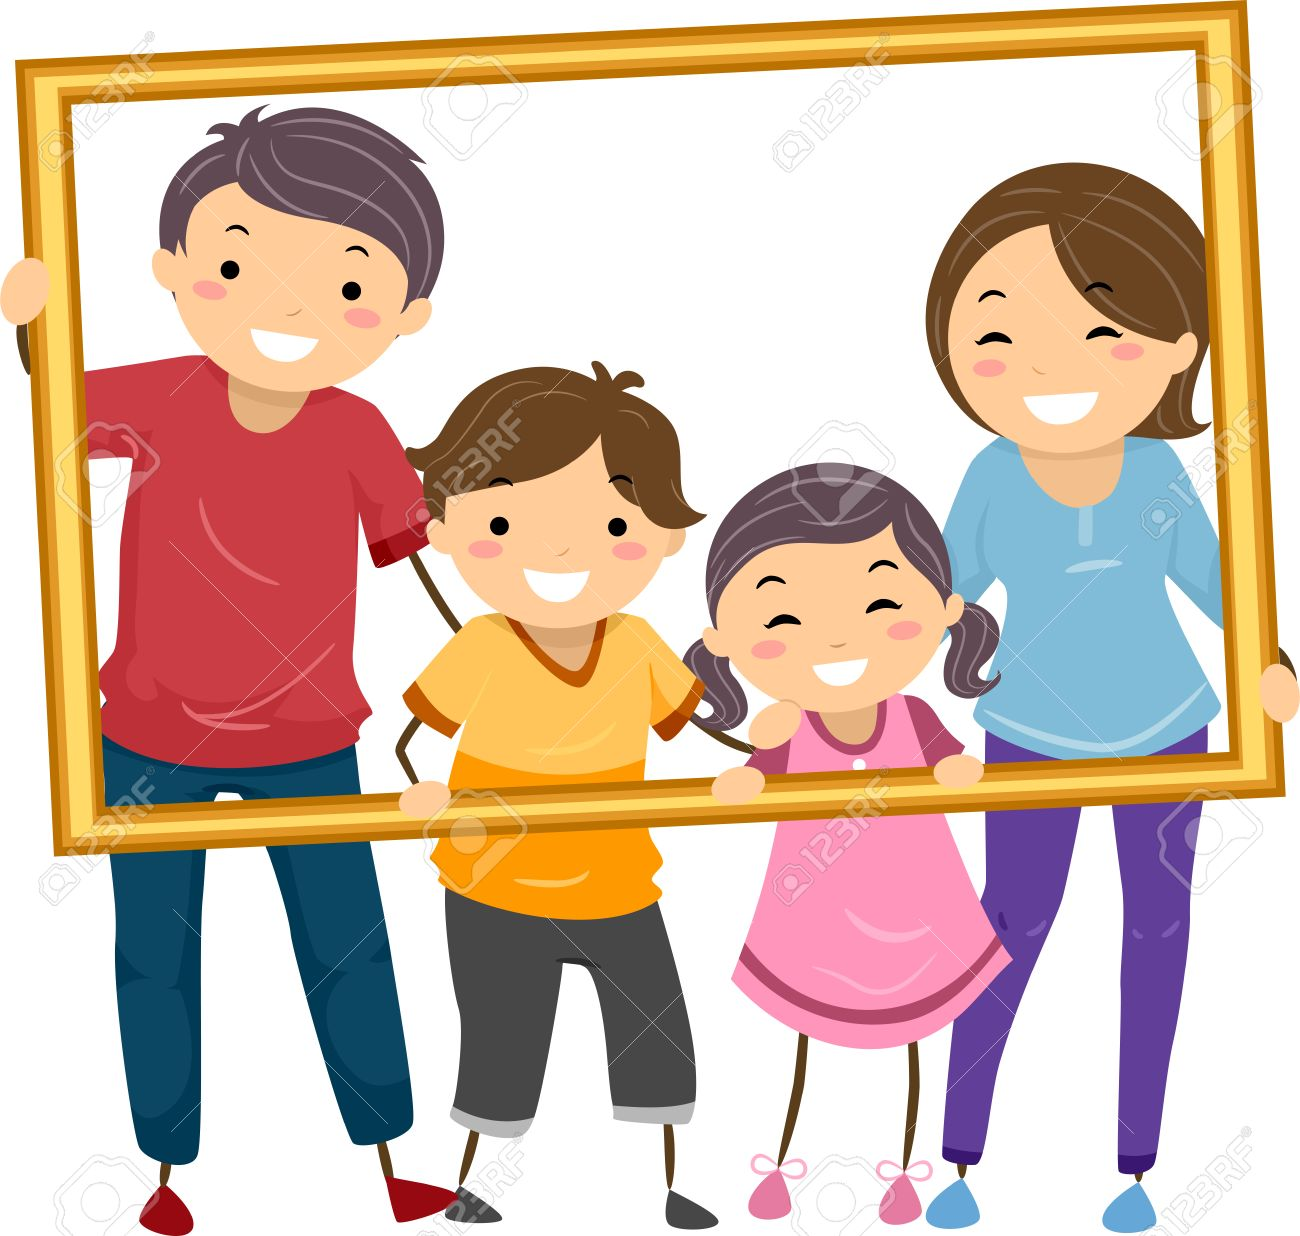 Illustration Featuring A Happy Family Ho-Illustration Featuring a Happy Family Holding a Hollow Frame Stock Vector - 31689328-10